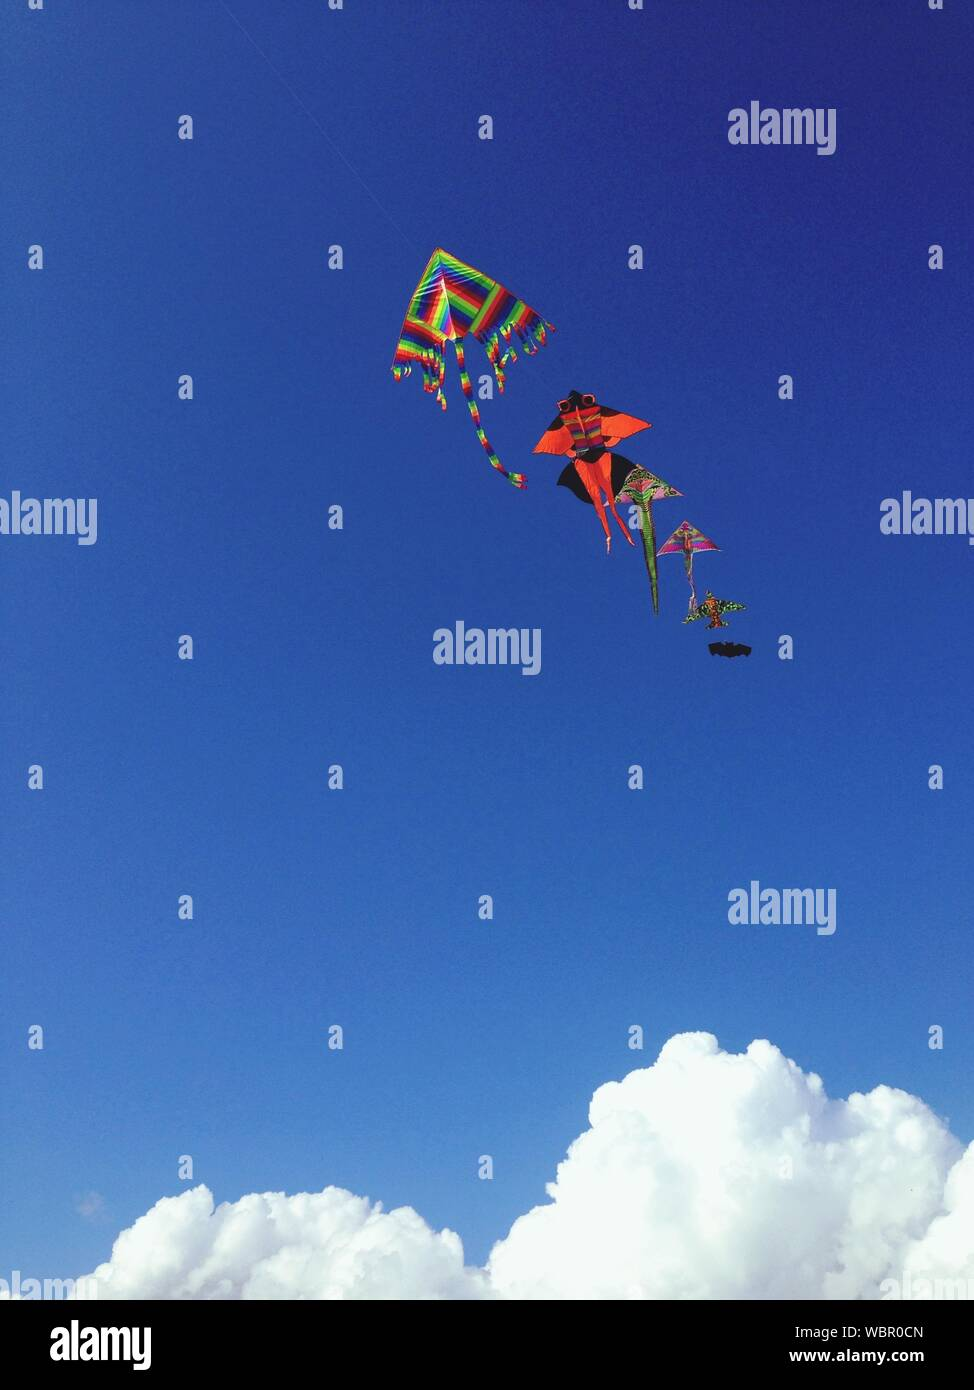 Multi Colored Kites Flying Against Blue Sky Stock Photo